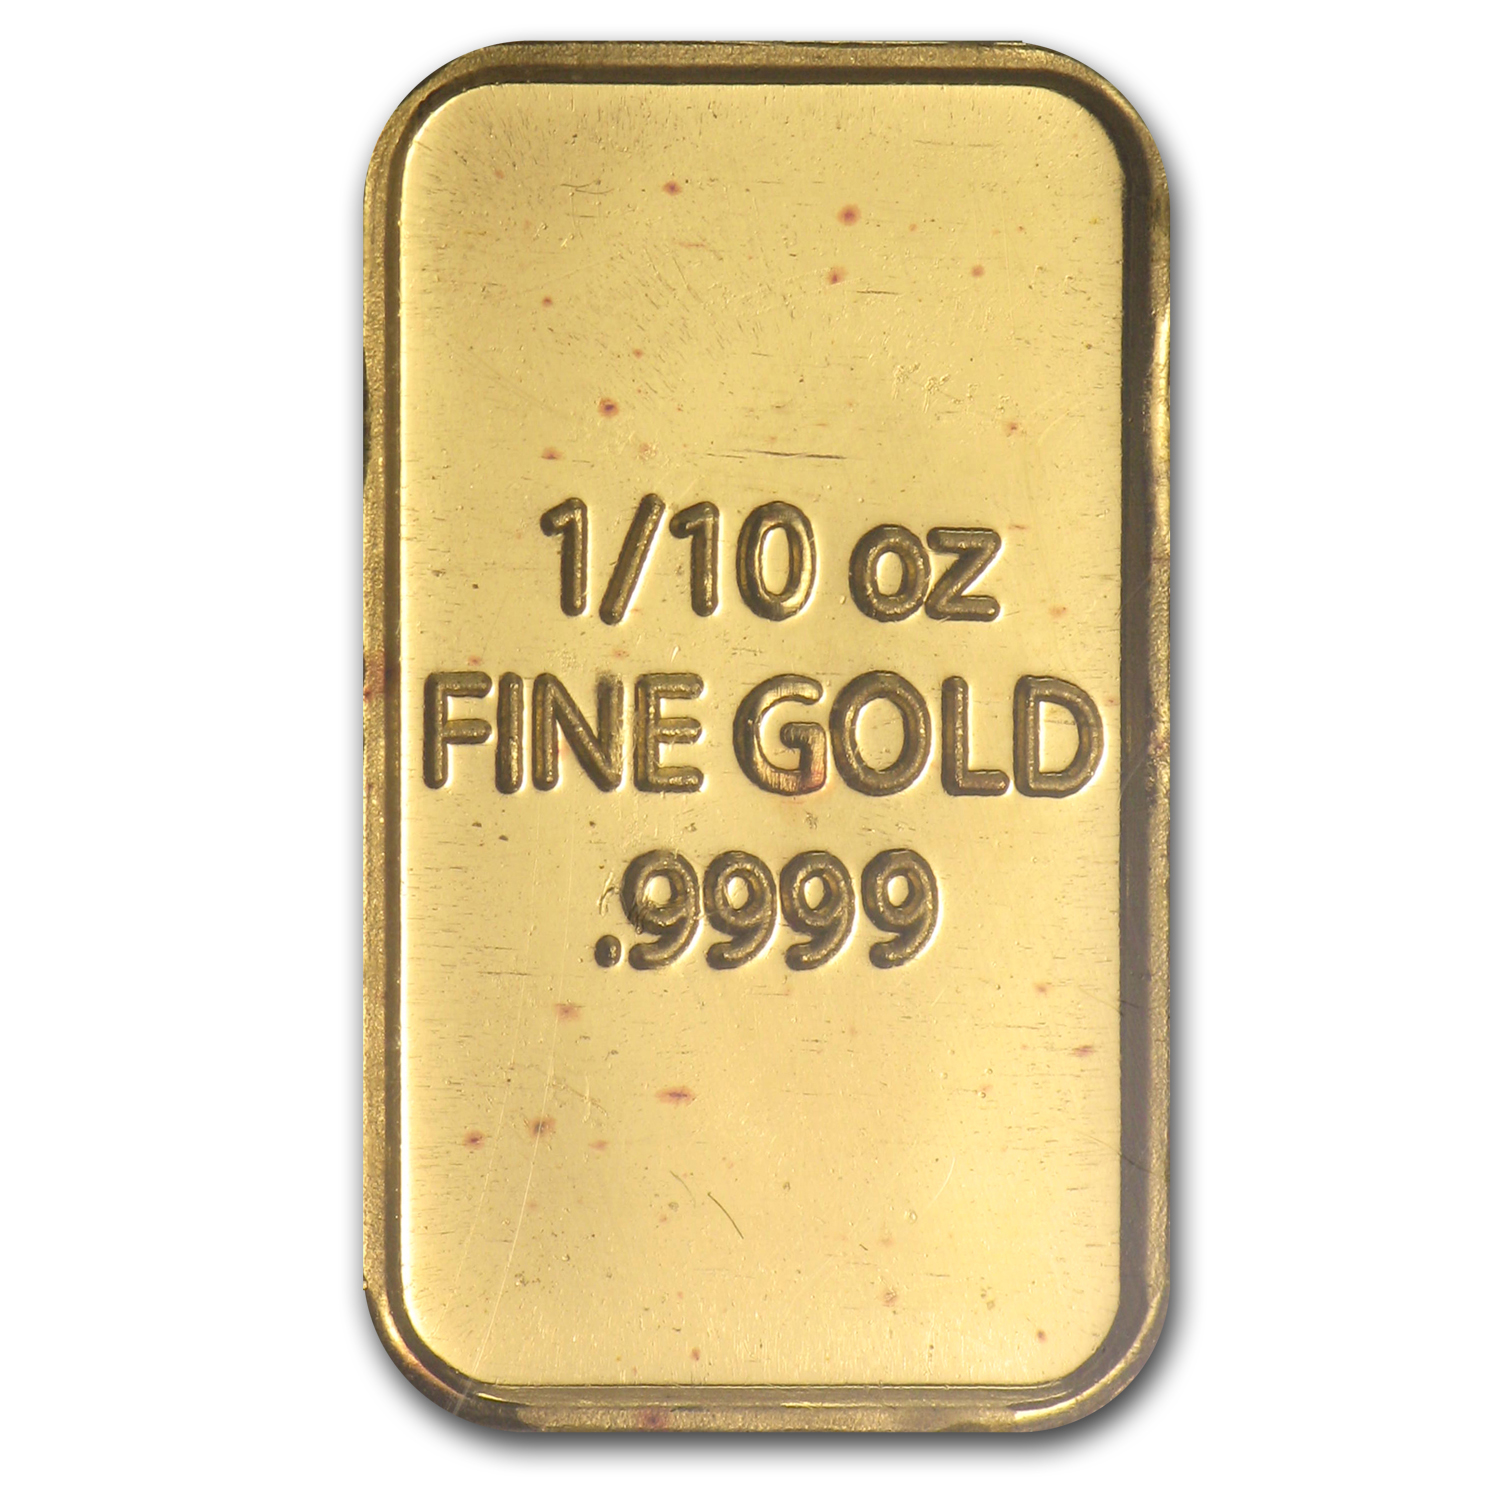 1/10 oz Gold Bars - Bison